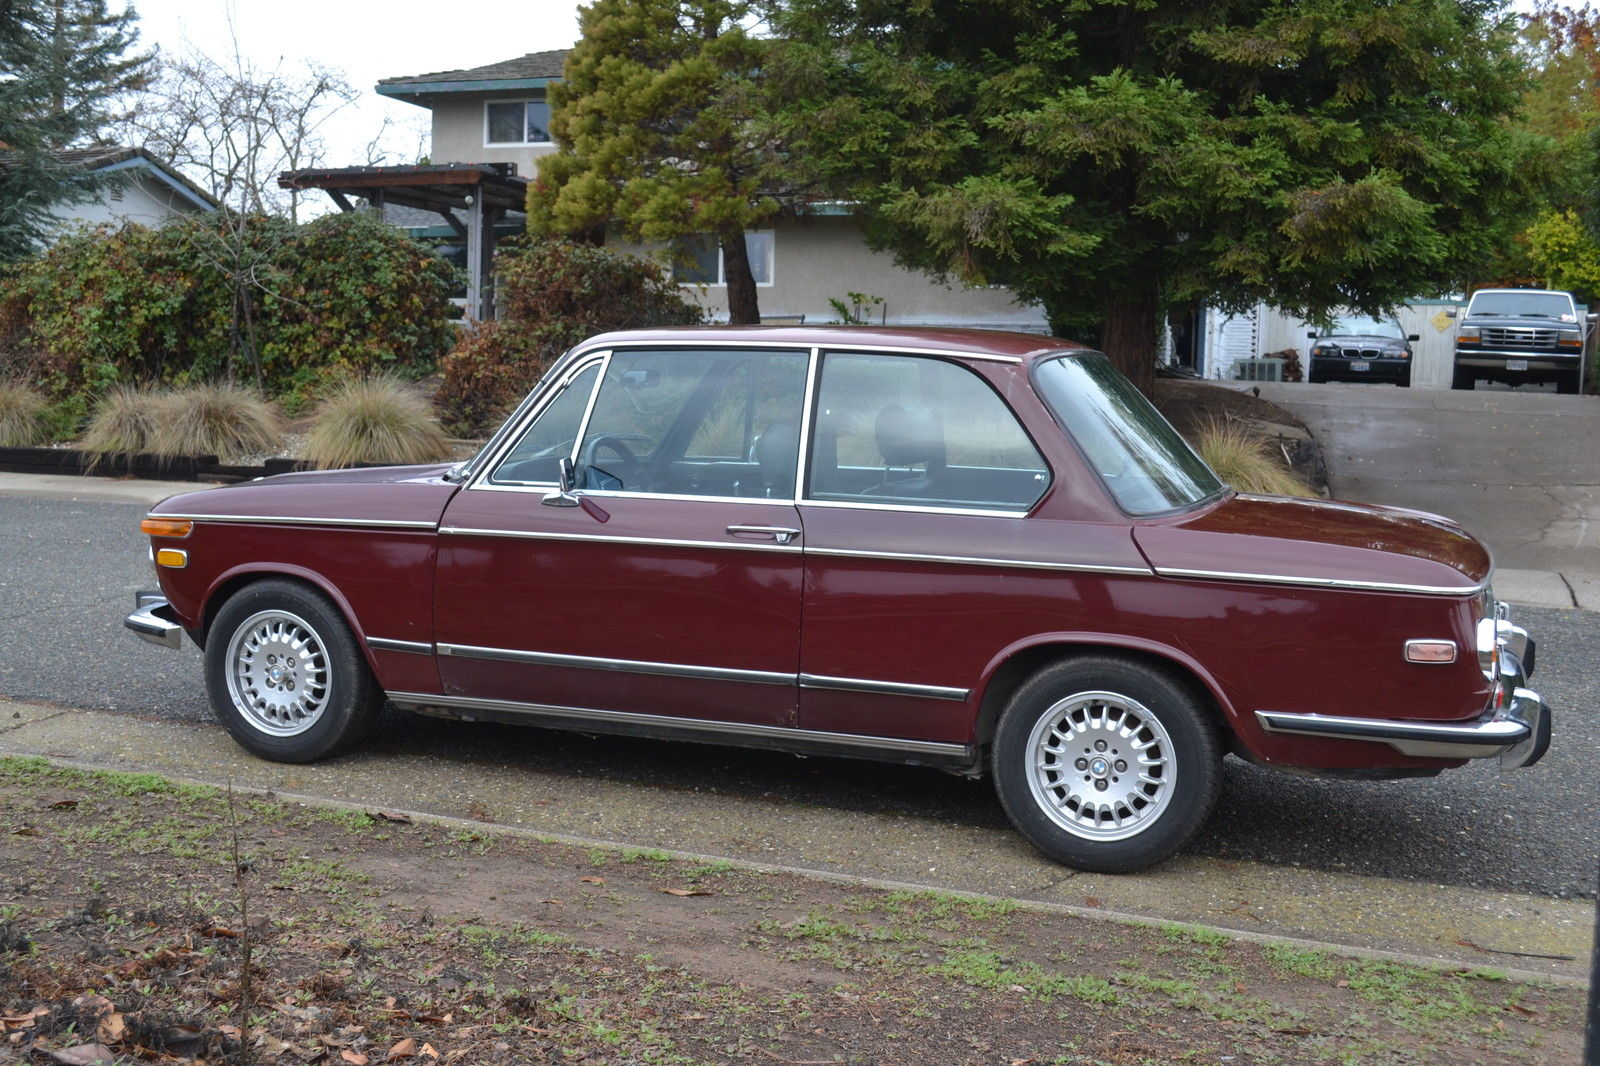 California 73 Bmw 2002tii Stock Ready For Restoration Good To Vg Condition Classic Bmw